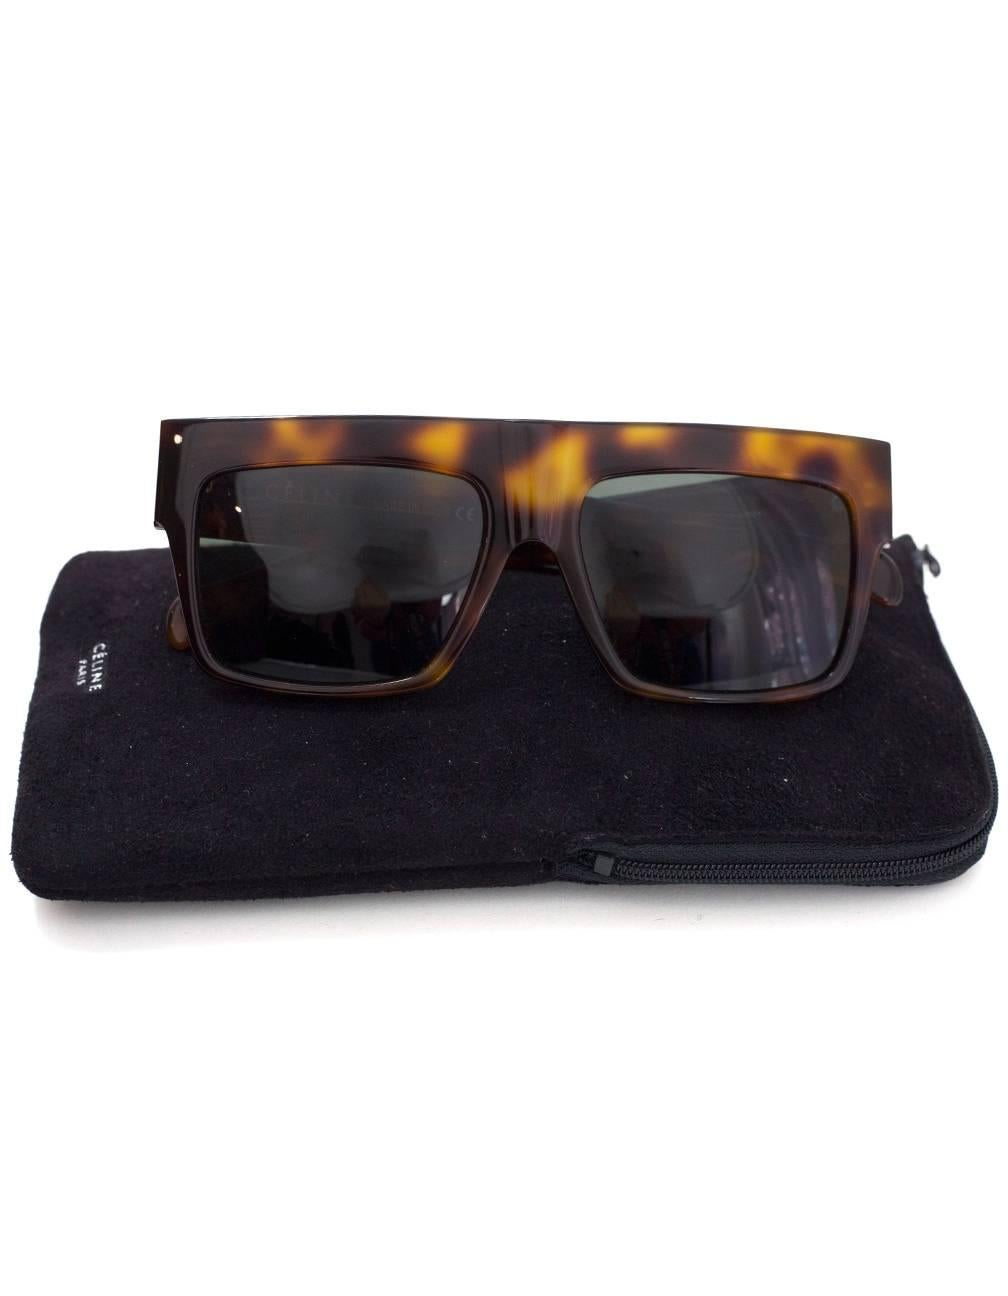 22cd44ce8859c Celine Tortoise Polarized CL 41756 ZZ Top Sunglasses with Case For Sale at  1stdibs